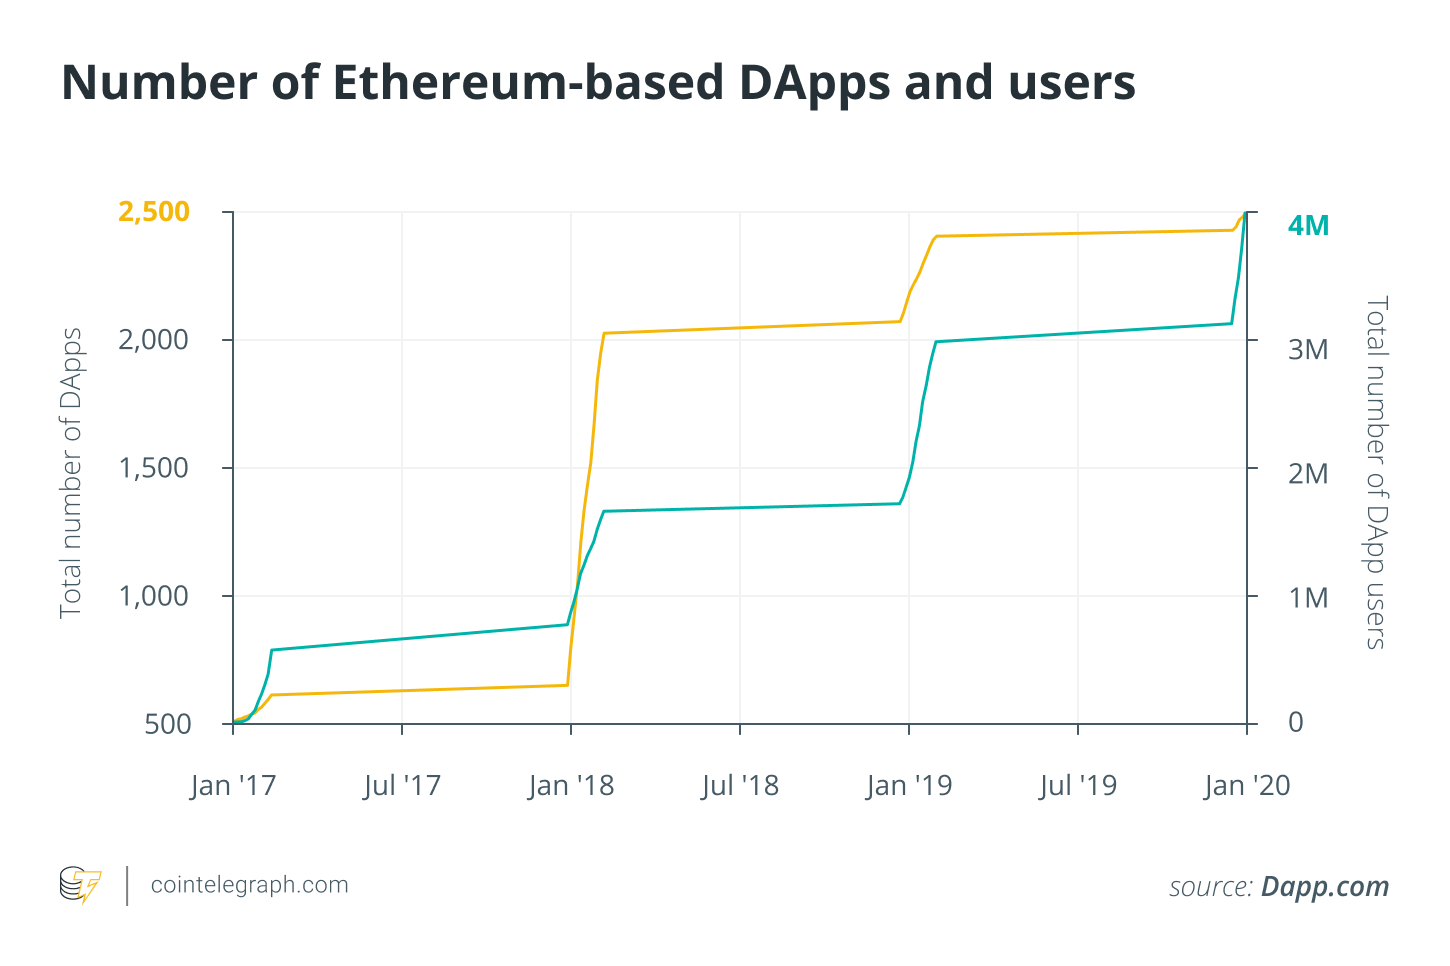 Number of Ethereum-based DApps and users